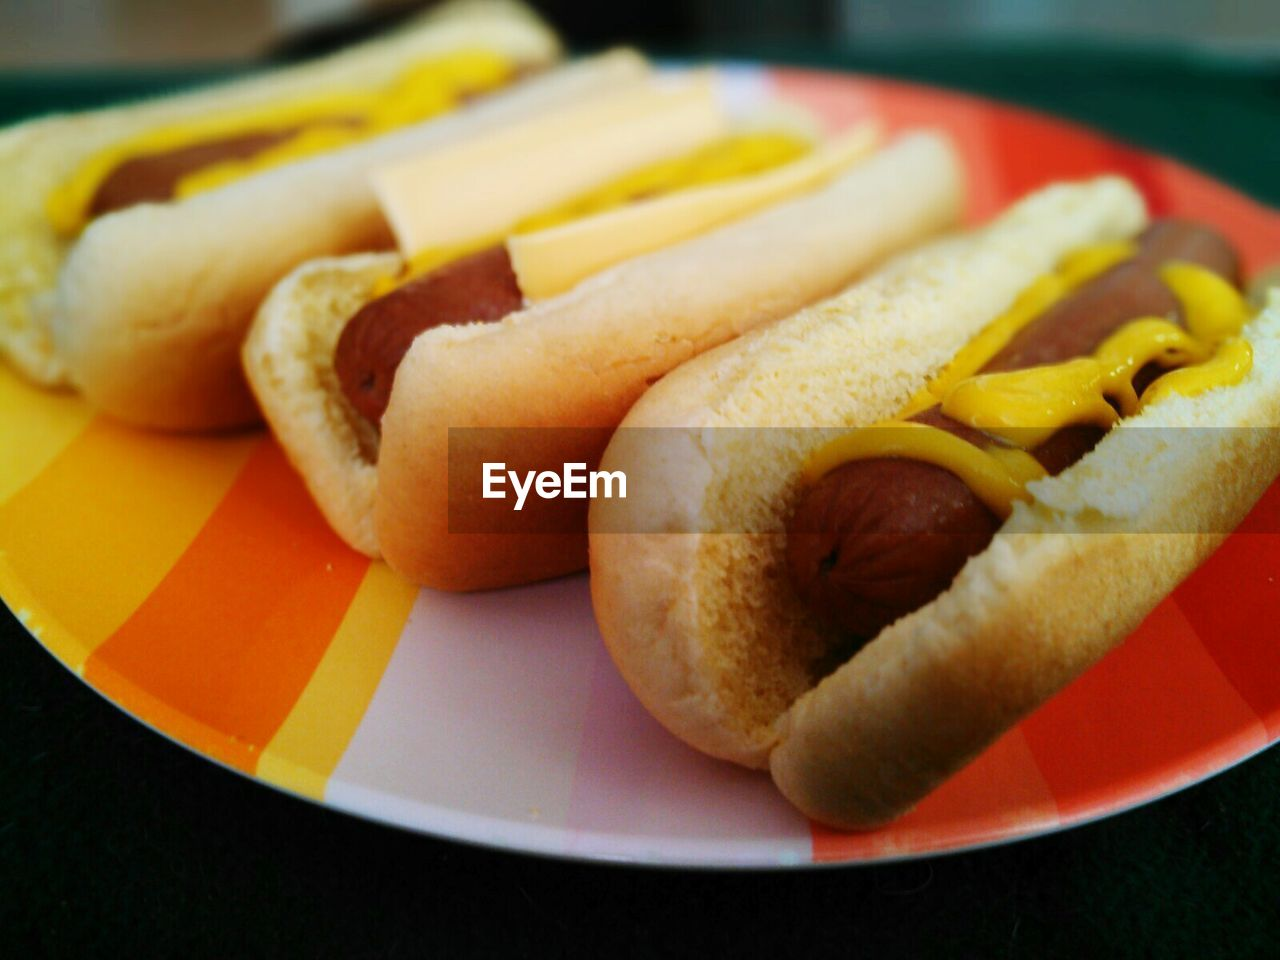 Hot dogs served in plate on table